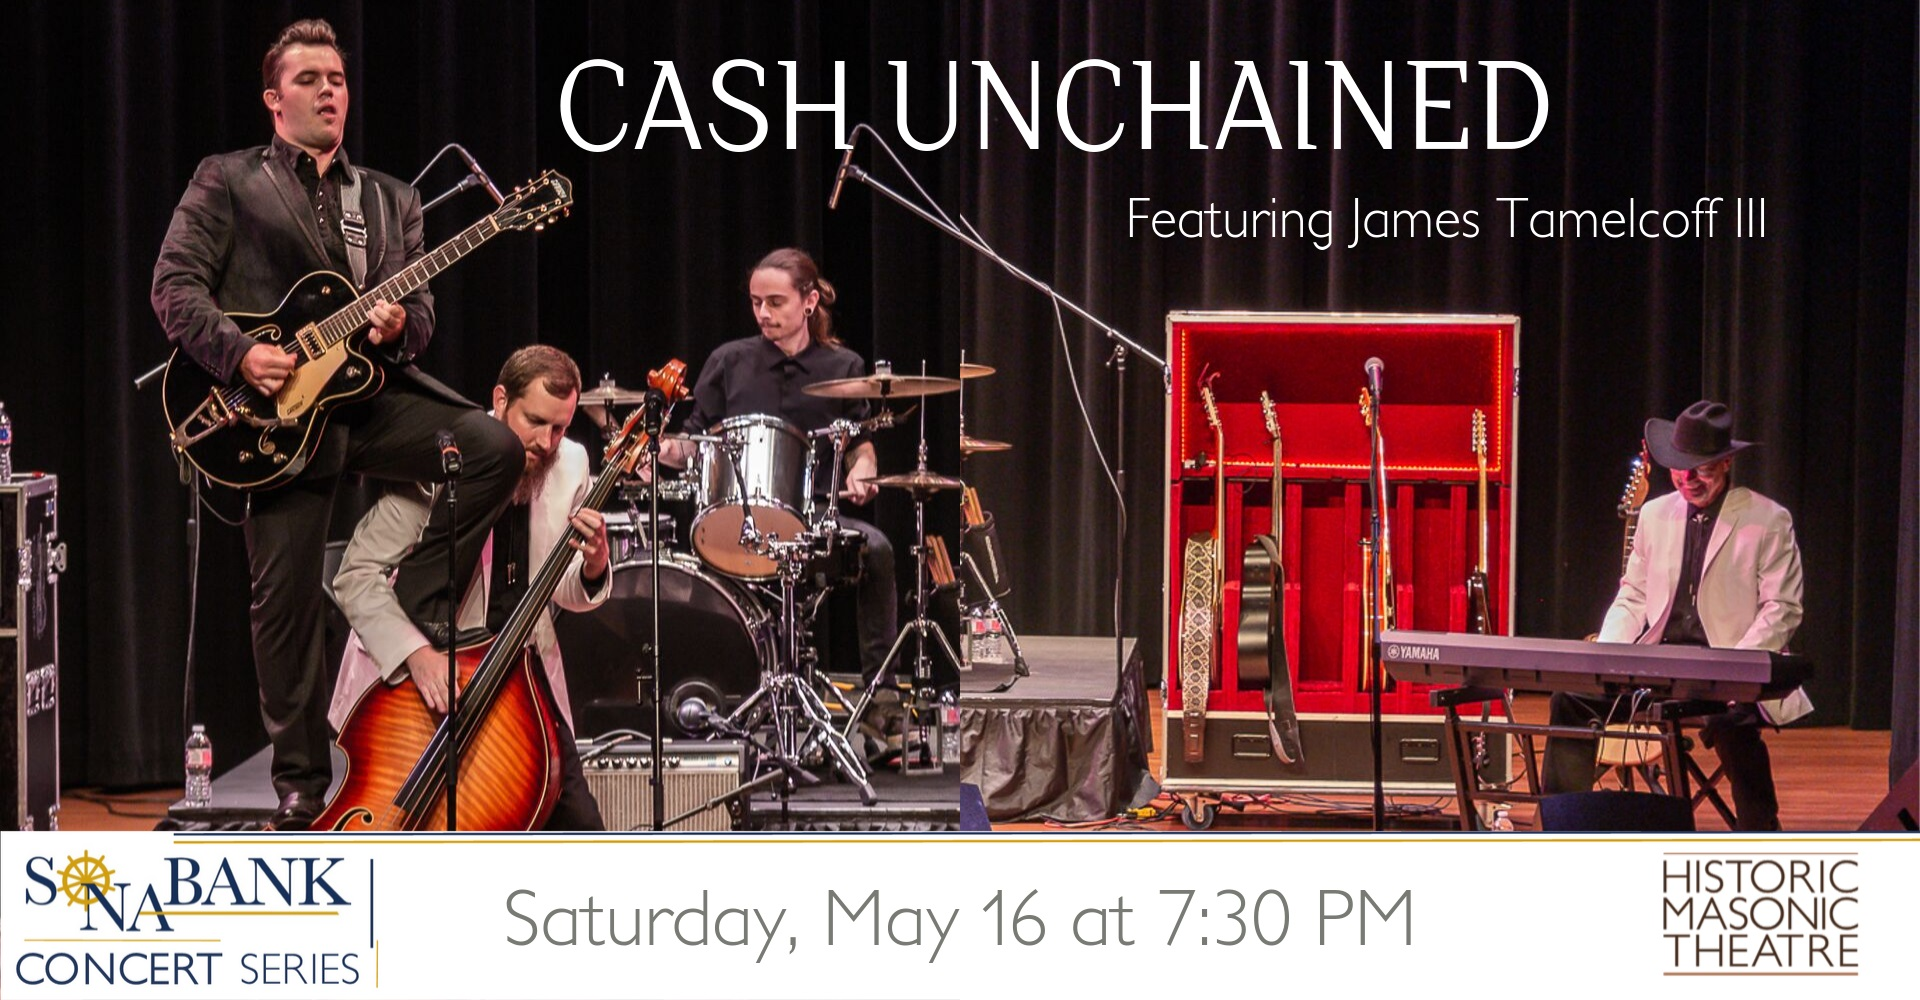 Cash Unchained 2020 May 16